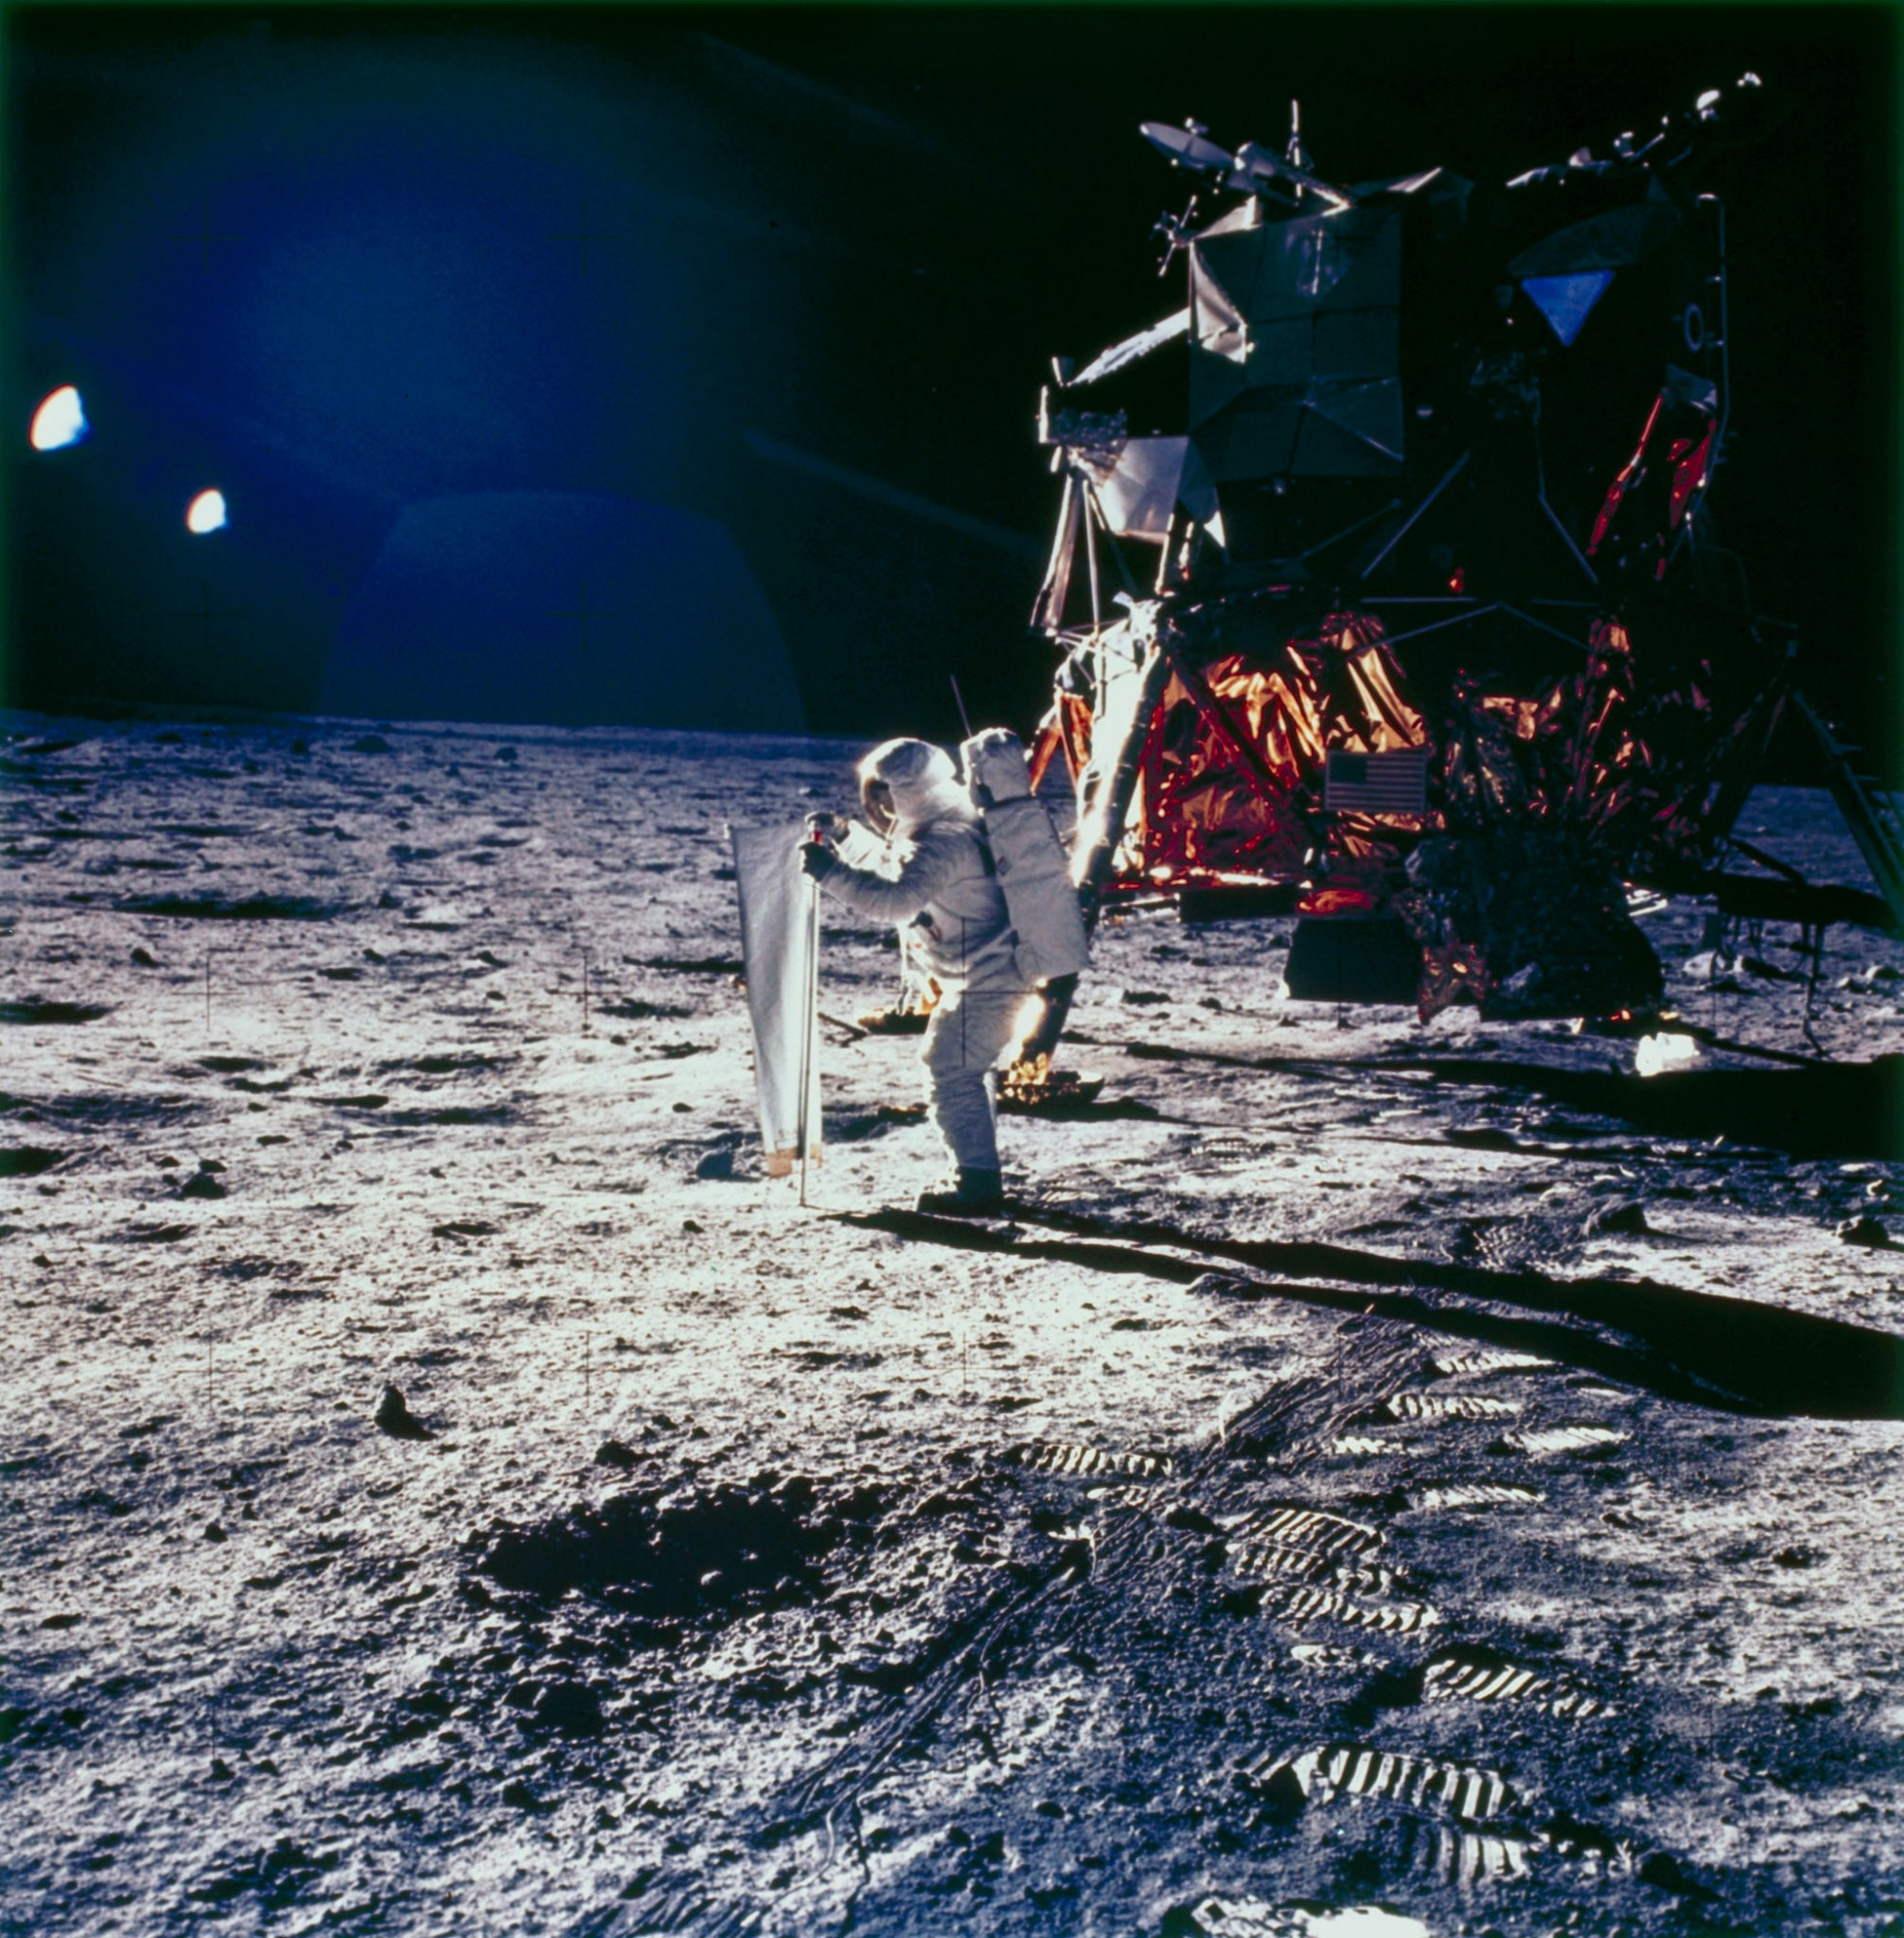 Apollo 11 astronaut Edwin Buzz Aldrin on the Moon, 1969